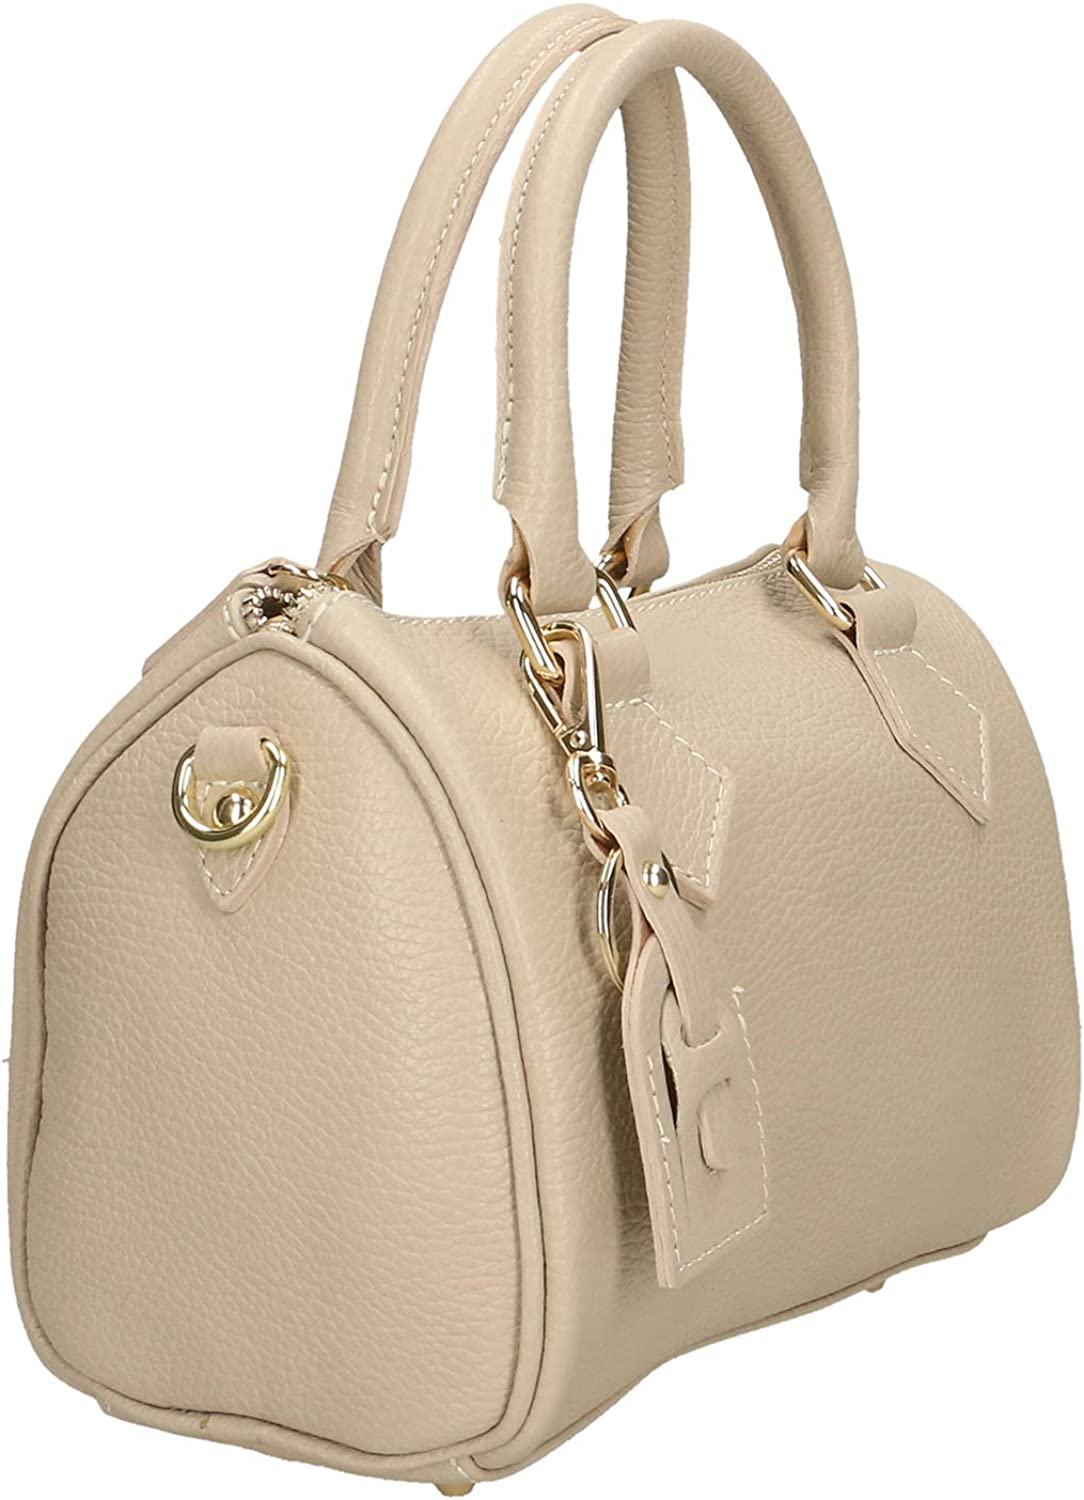 Chicca Borse Borsa a Mano Donna in Pelle Made in Italy 22x15x13 Cm Beige